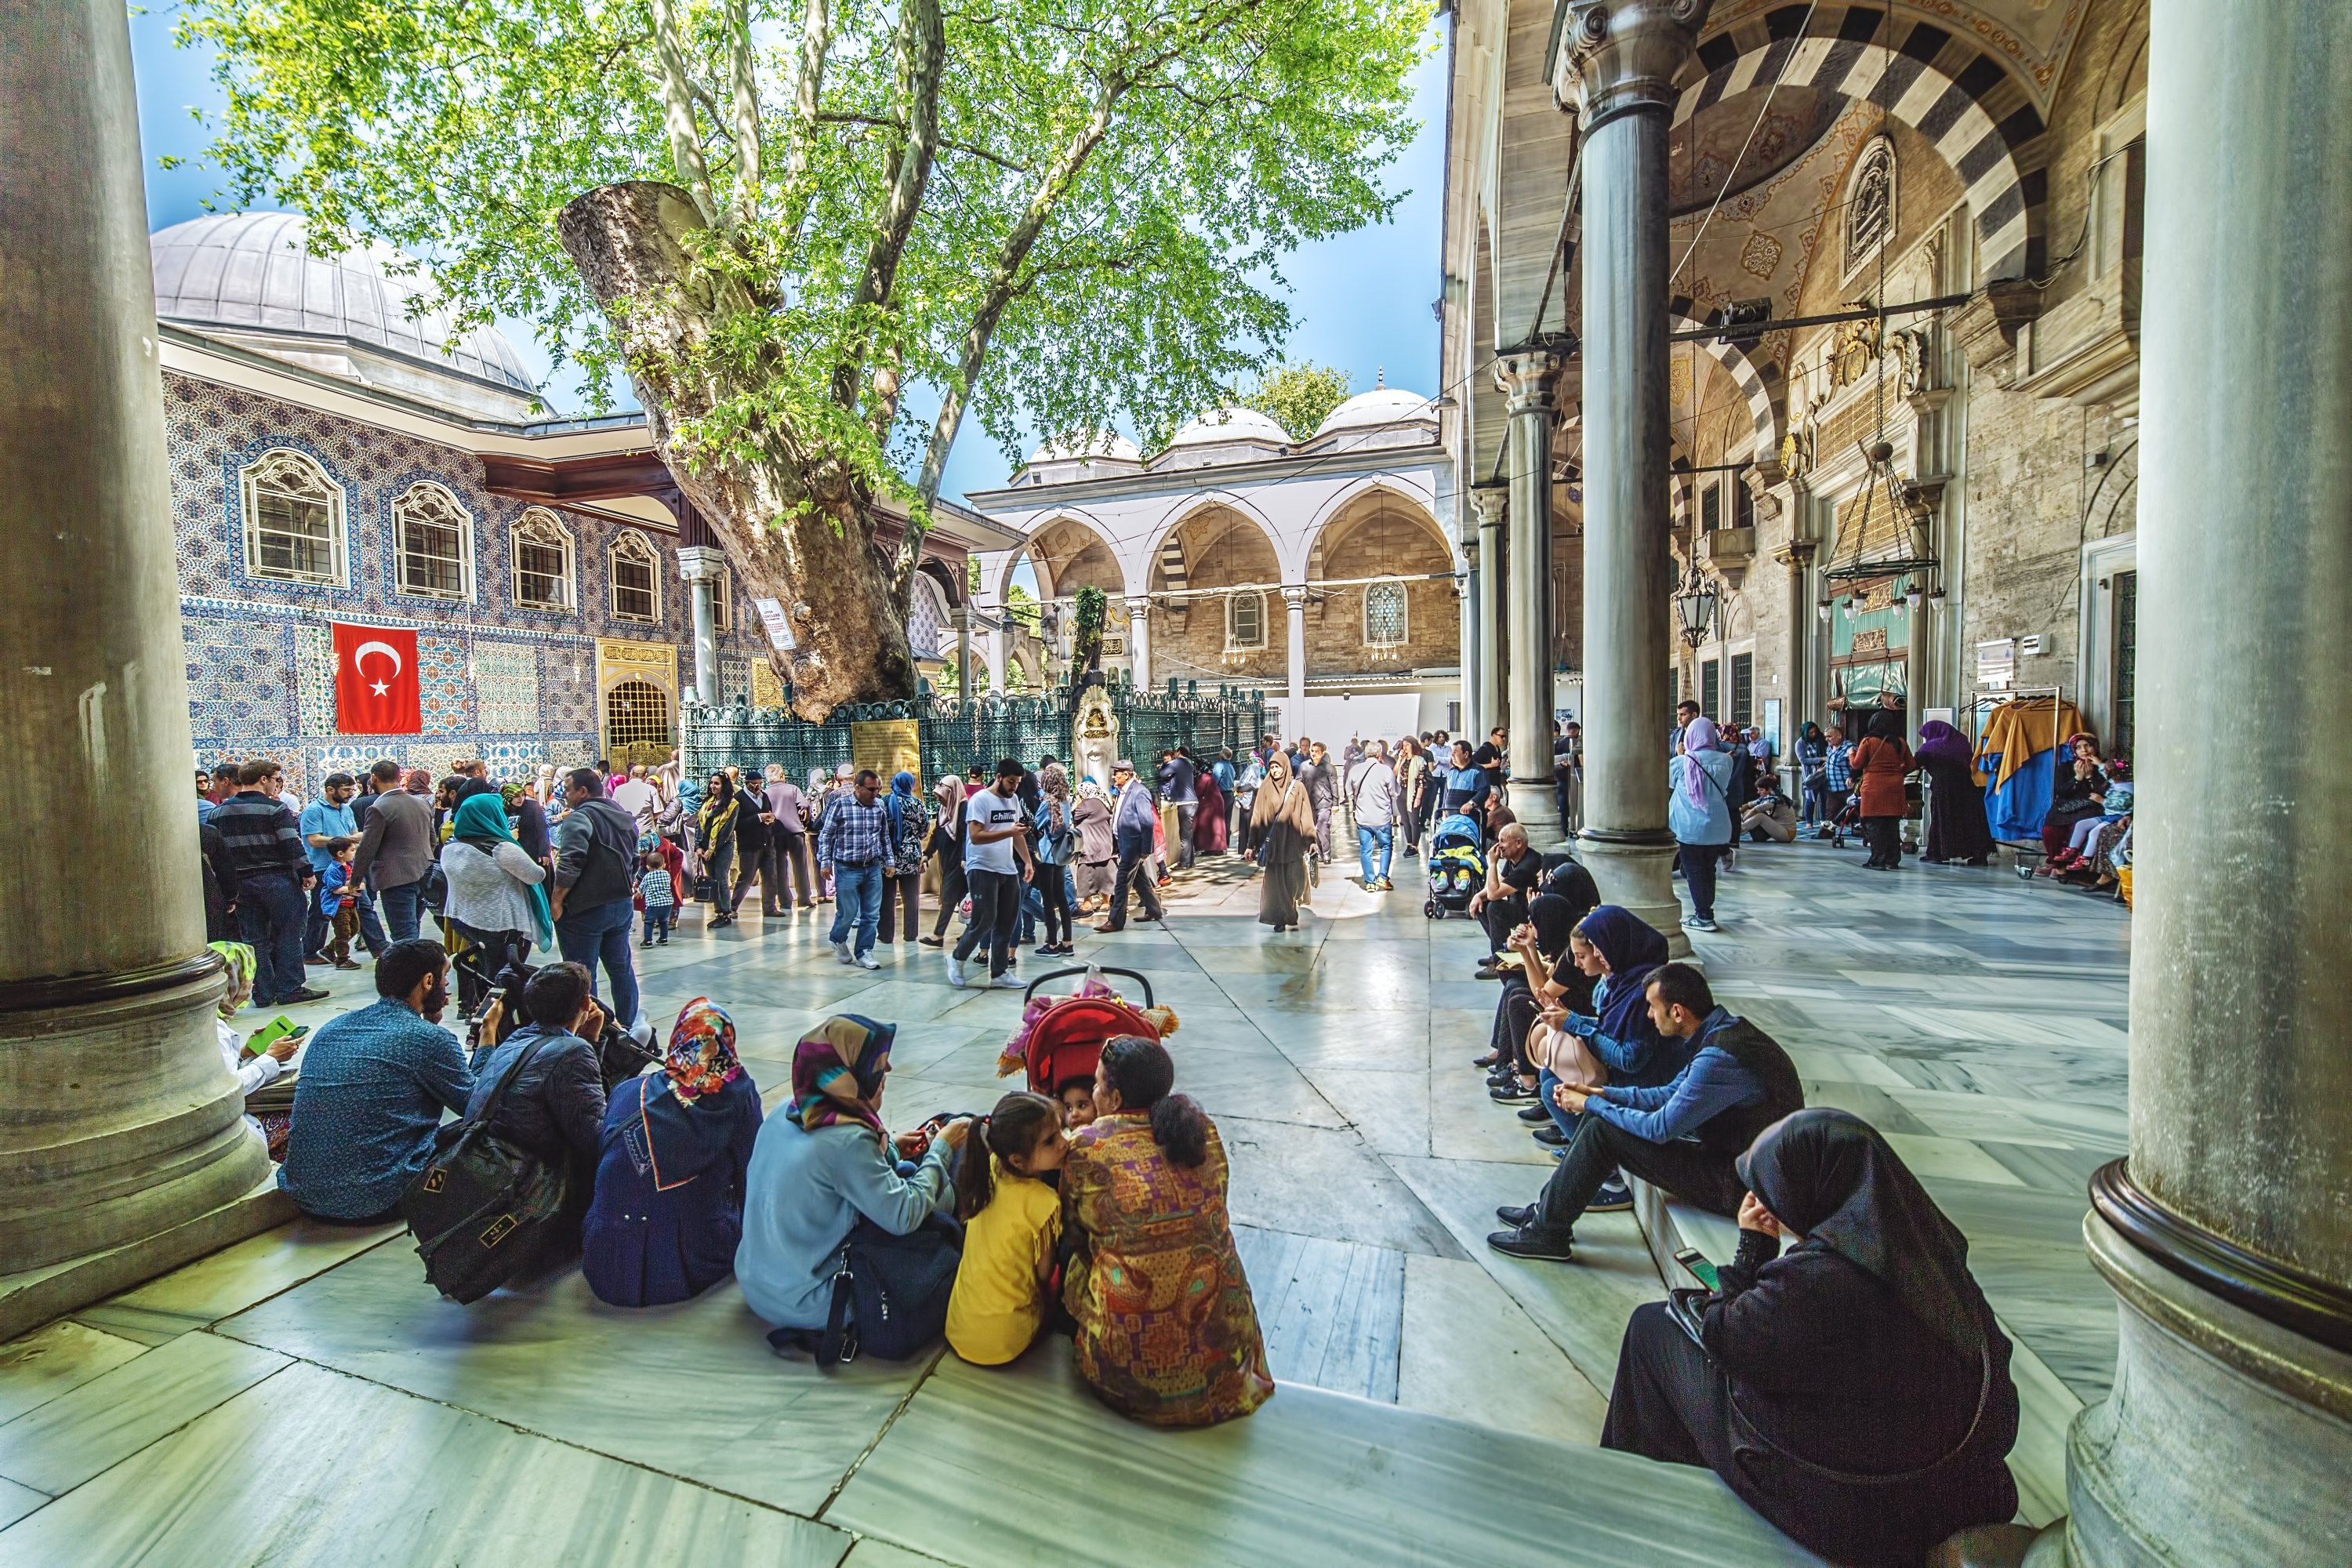 Pilgrims visiting the tomb of Abu Ayyub al-Ansari, a companion of the Prophet, at Eyüp Sultan Mosque, Eyüp district, Istanbul, on Apr. 30, 2018. (Shutterstock Photo)